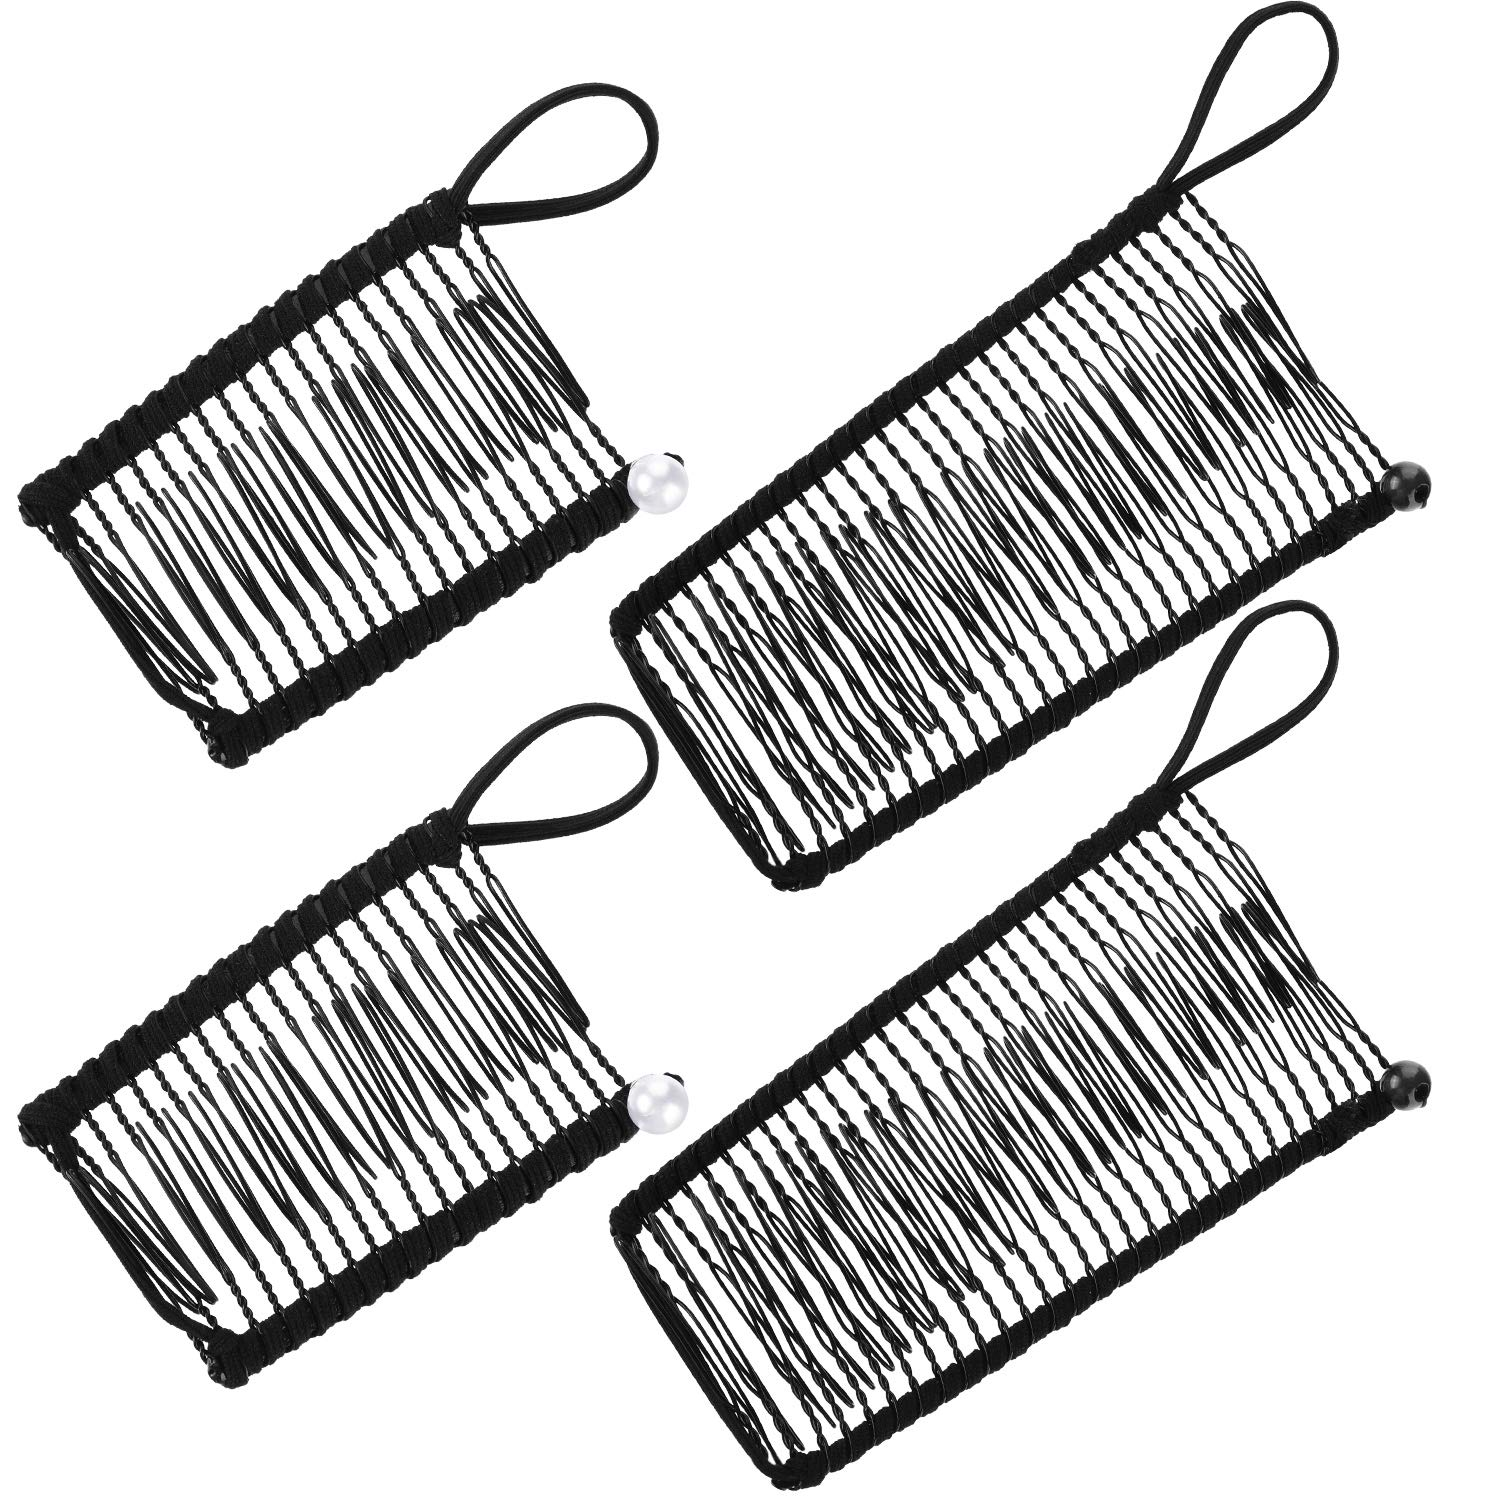 4 Pieces Banana Hair Clips Clincher Comb Banana Hair Grip No Crease Hair Clips for Natural Curly Thick Wavy Hair Ponytail Style and Up-do